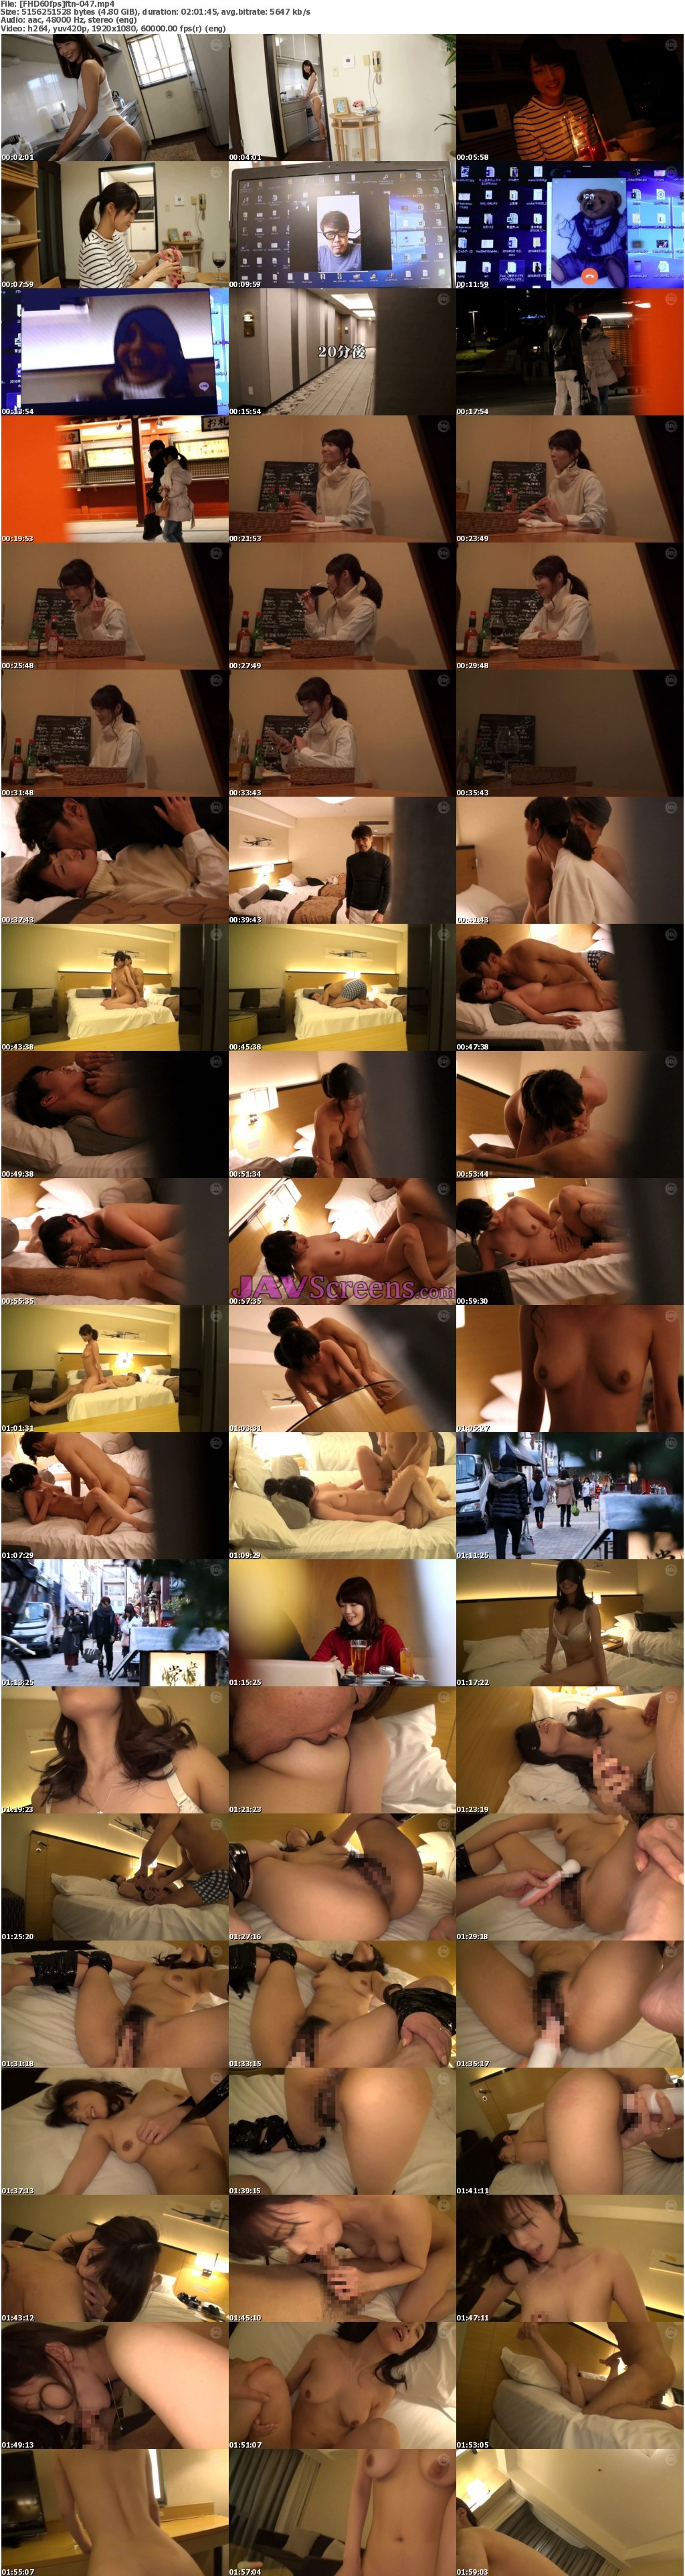 FTN-047.jpg - JAV Screenshot